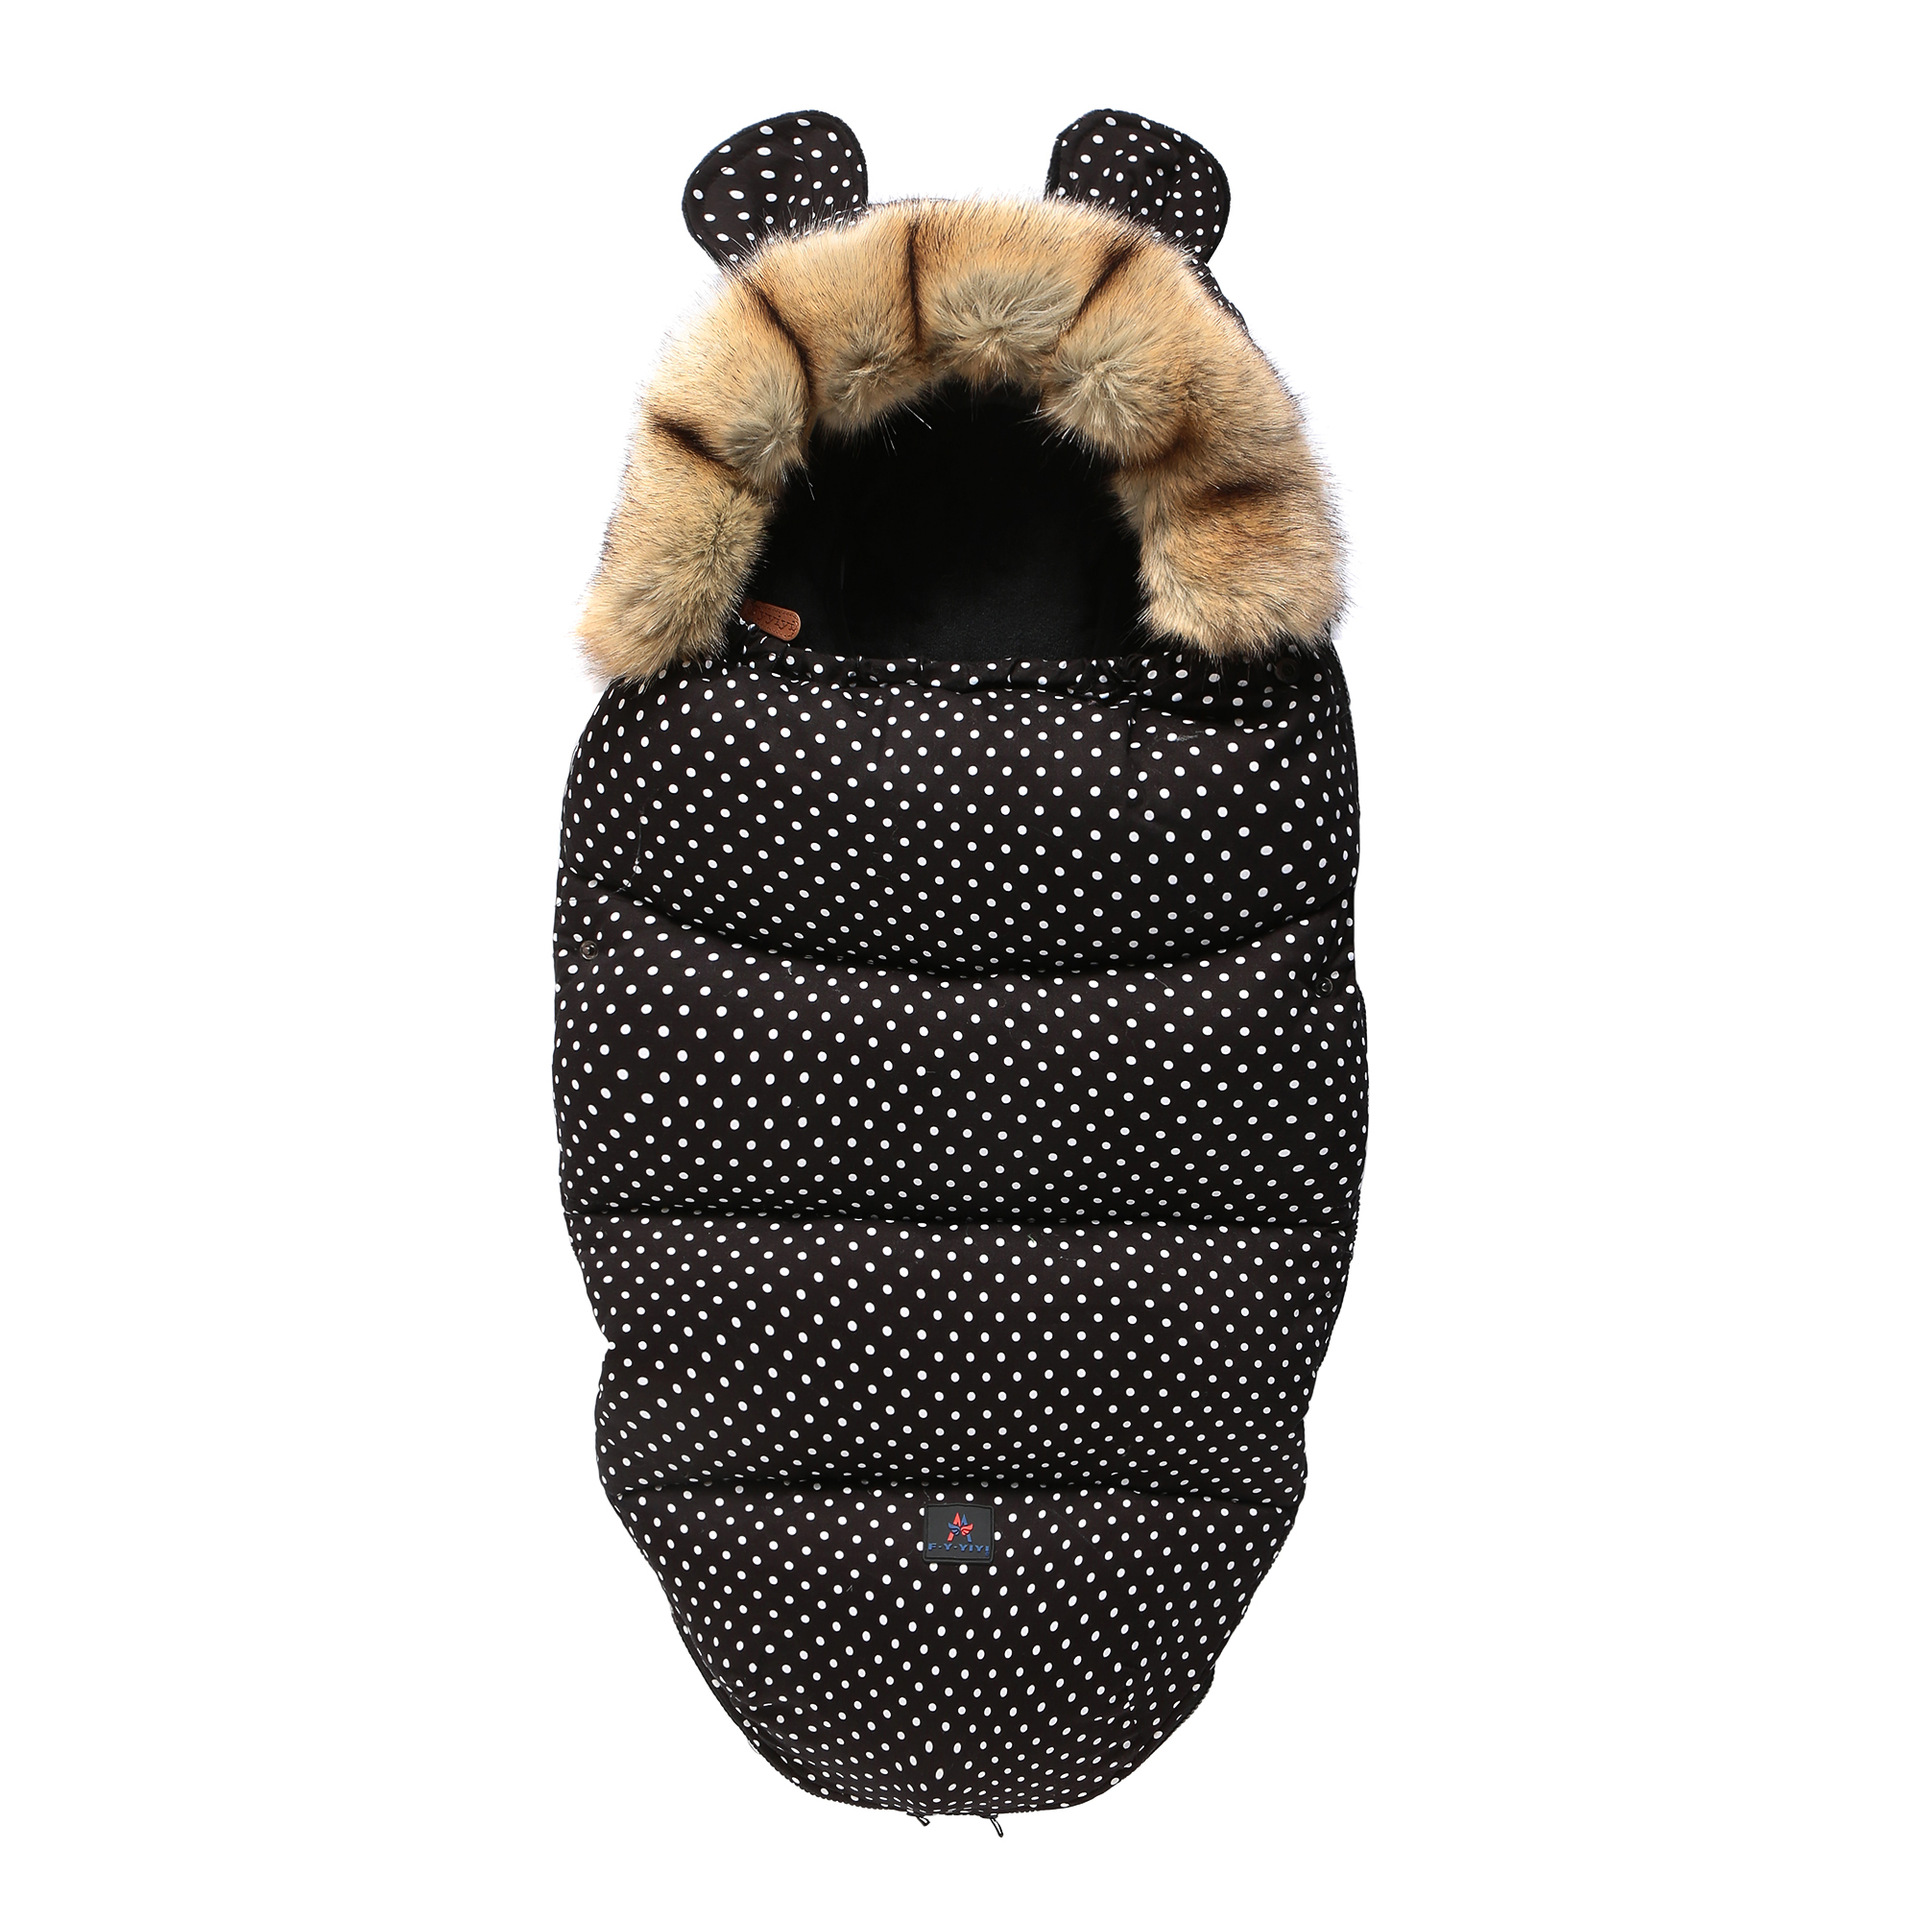 Baby Stroller Sleeping Bag Winter Warm Sleepsacks Robe For Infant Wheelchair Envelopes For Newborns Baby Winter Travel To Keep